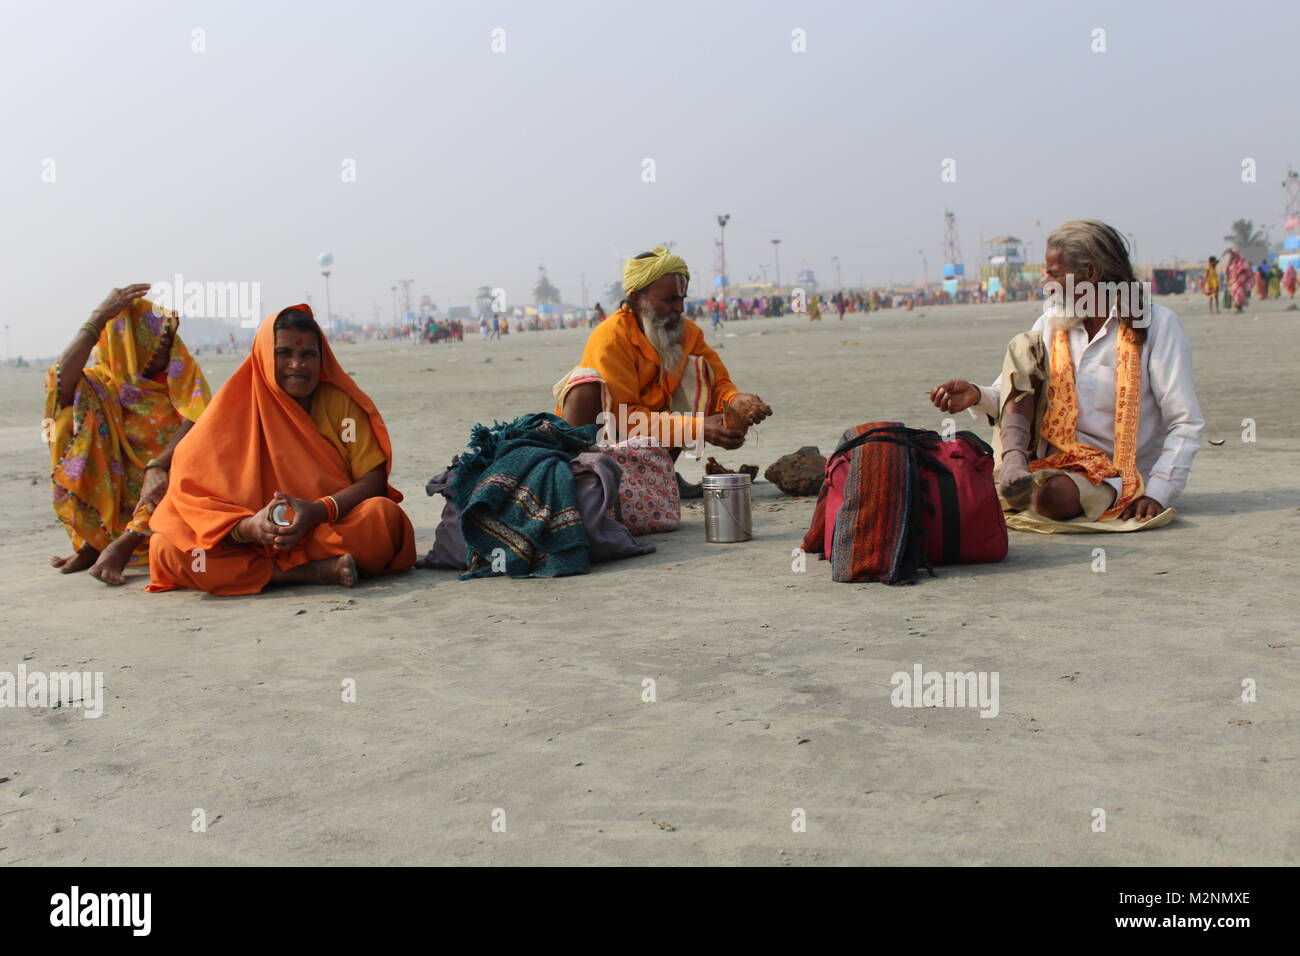 A Group of Pilgrims Take A Rest At Beach - Stock Image